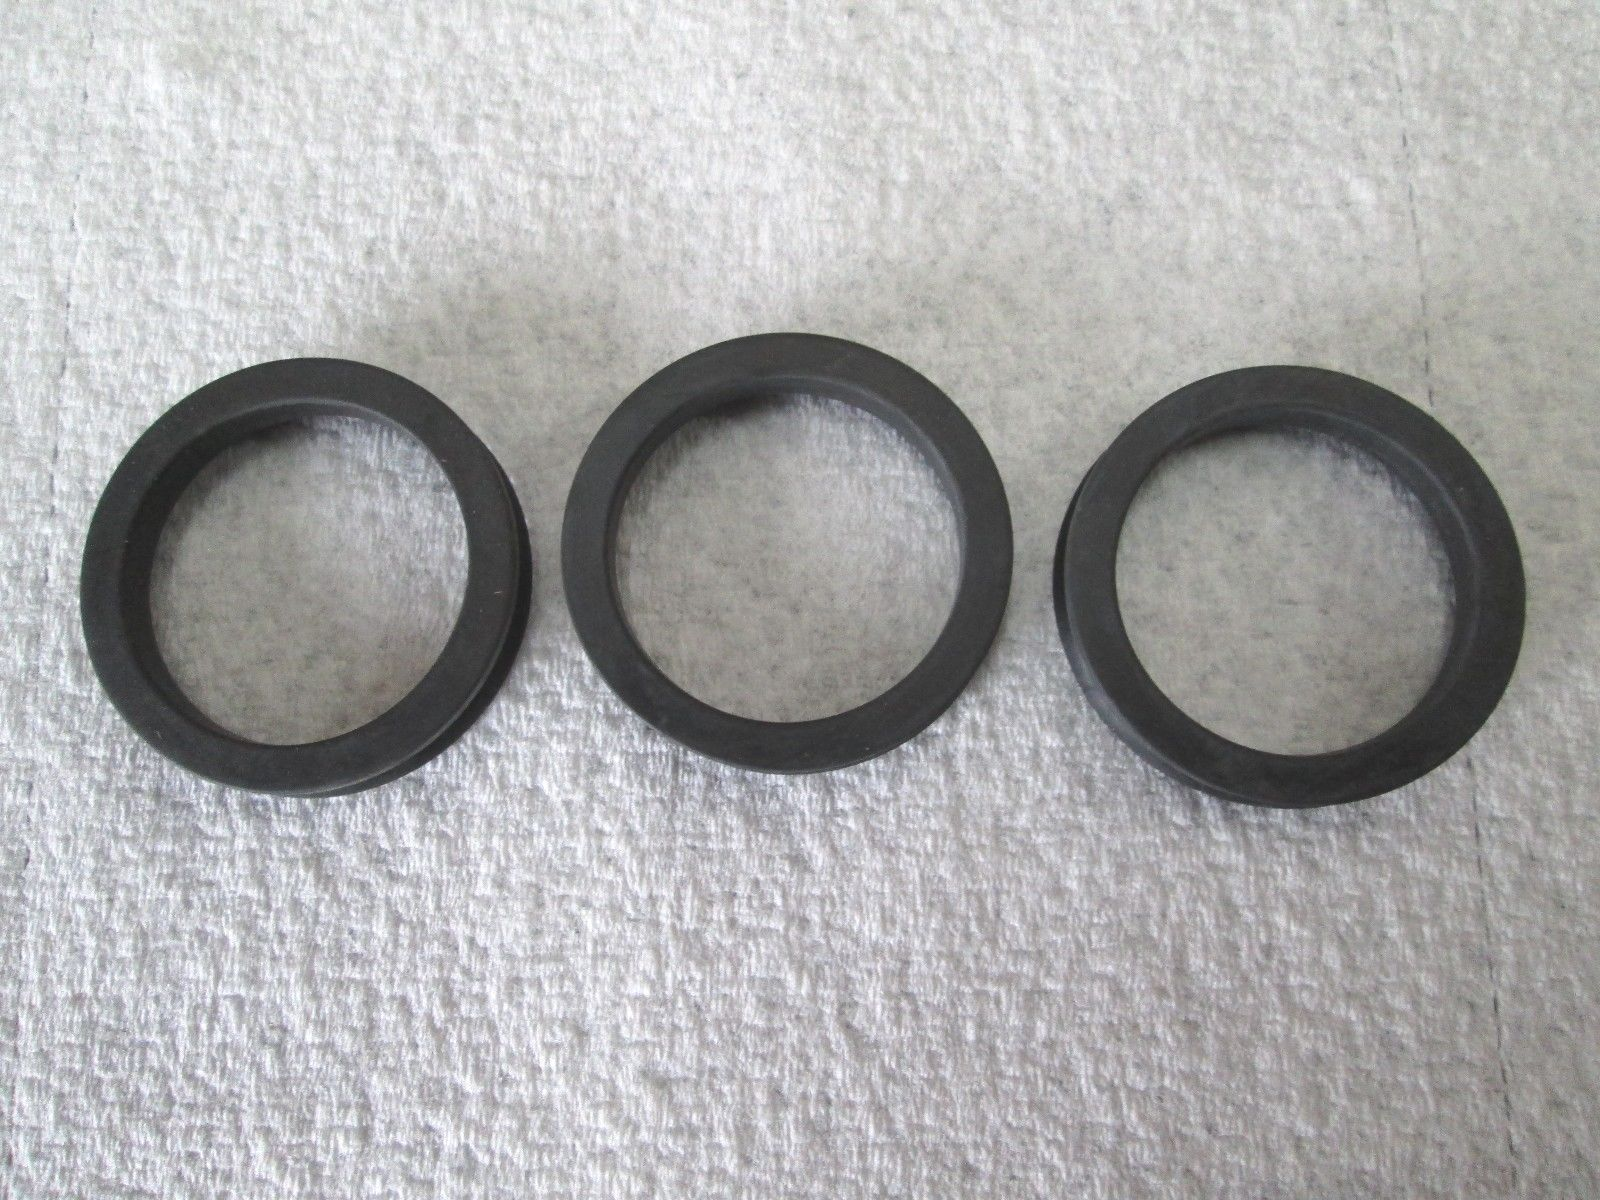 Primary image for 5023306,  Ferris,  V-Ring,  1.63 Shaft Seal,  Quantity=3